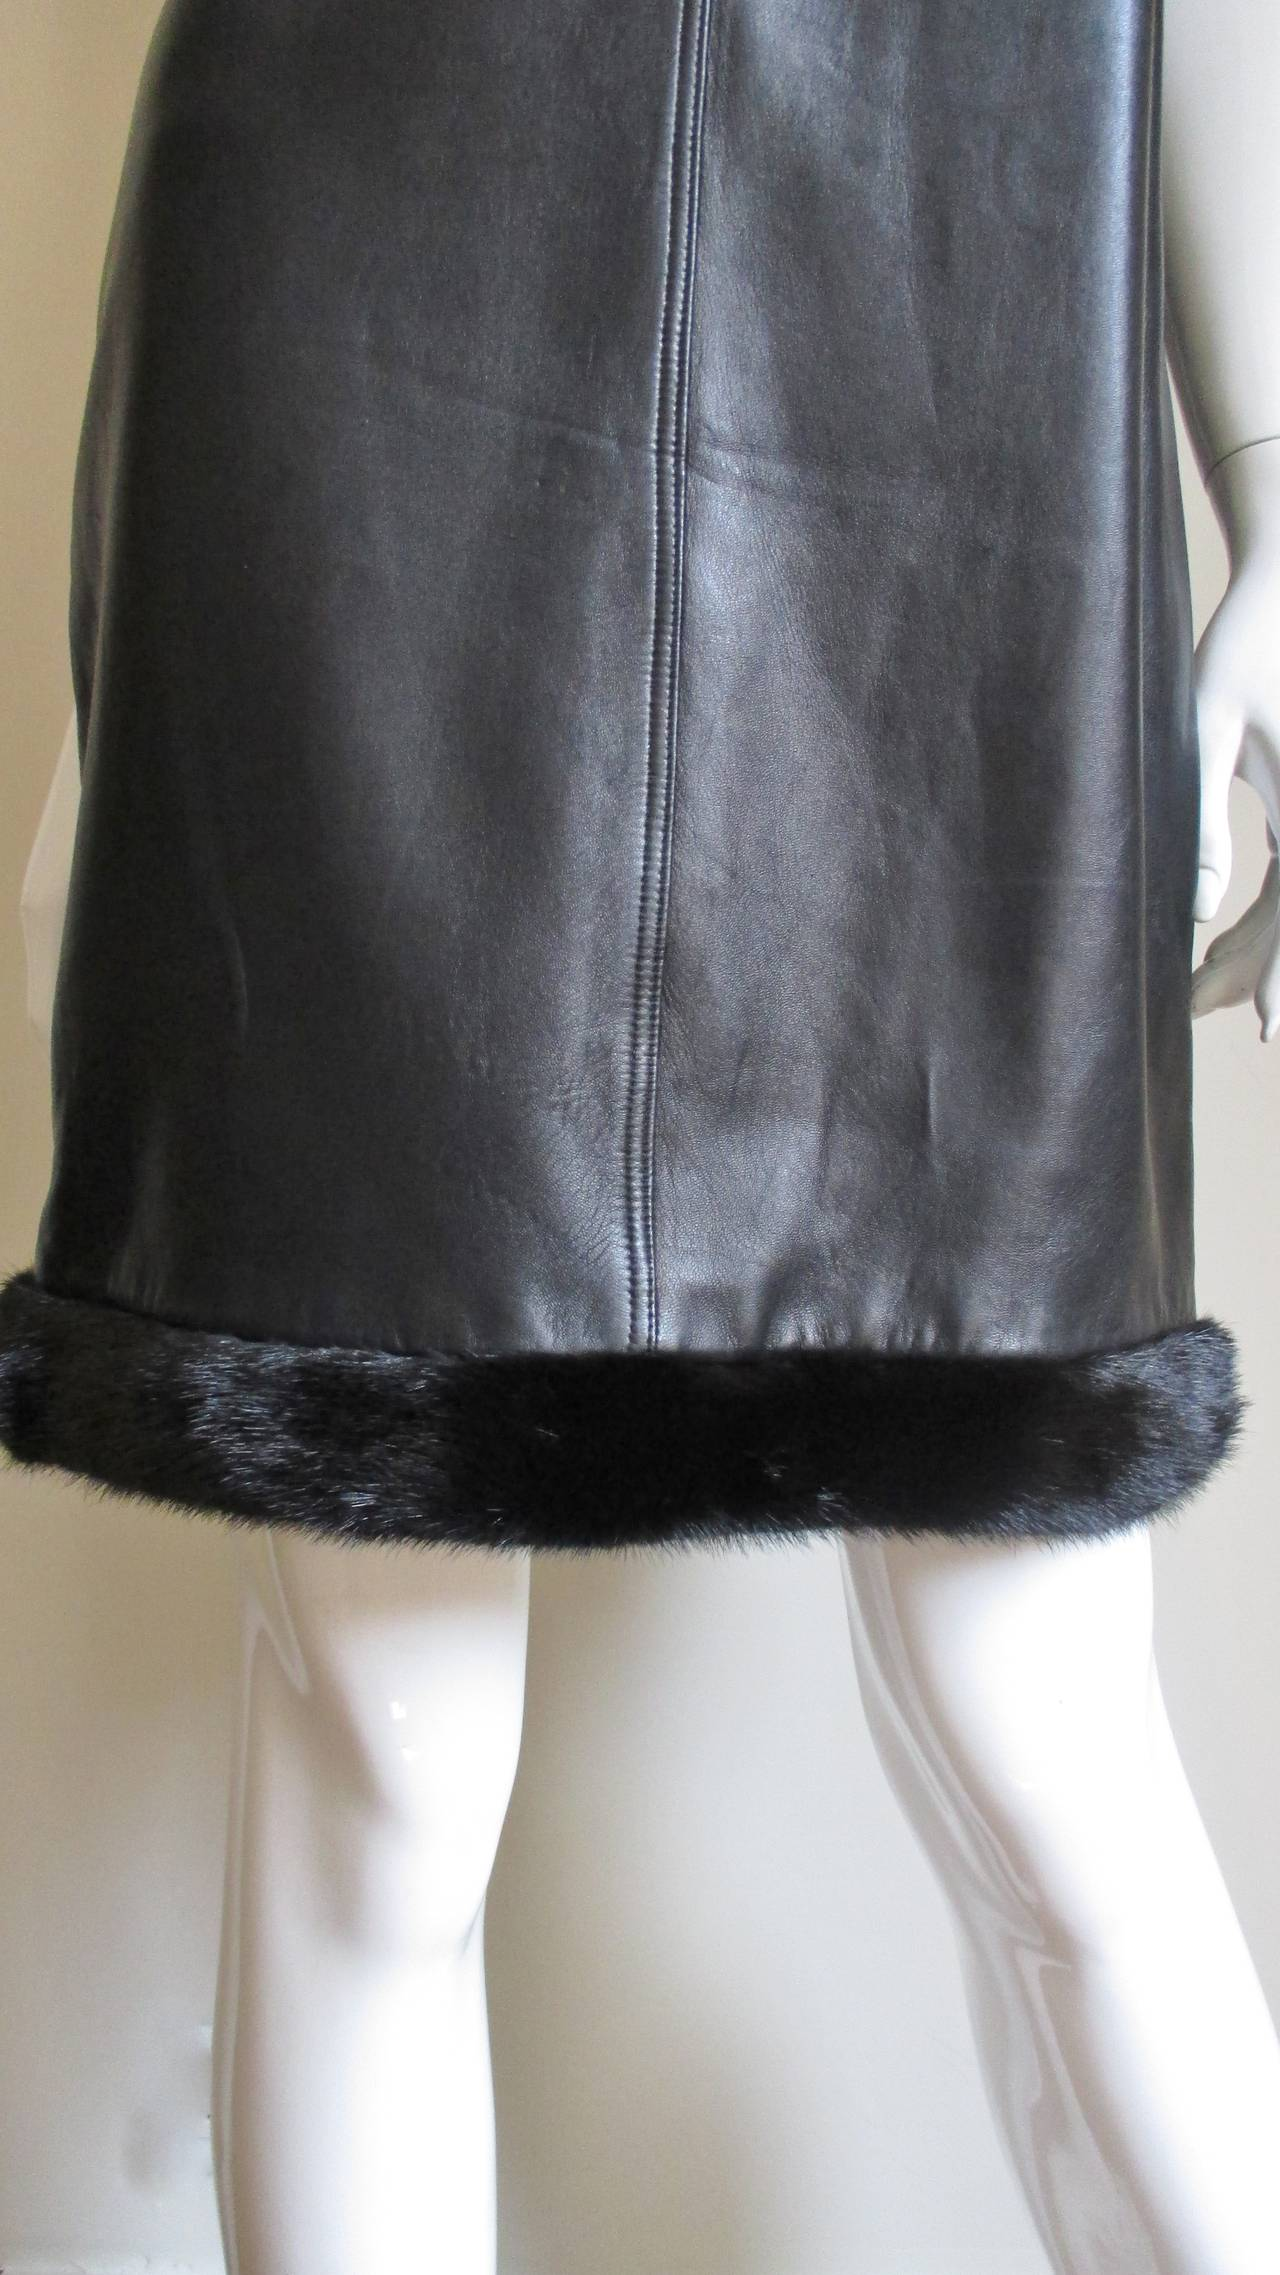 Vintage Gianni Versace Leather Dress with Mink Trim 3